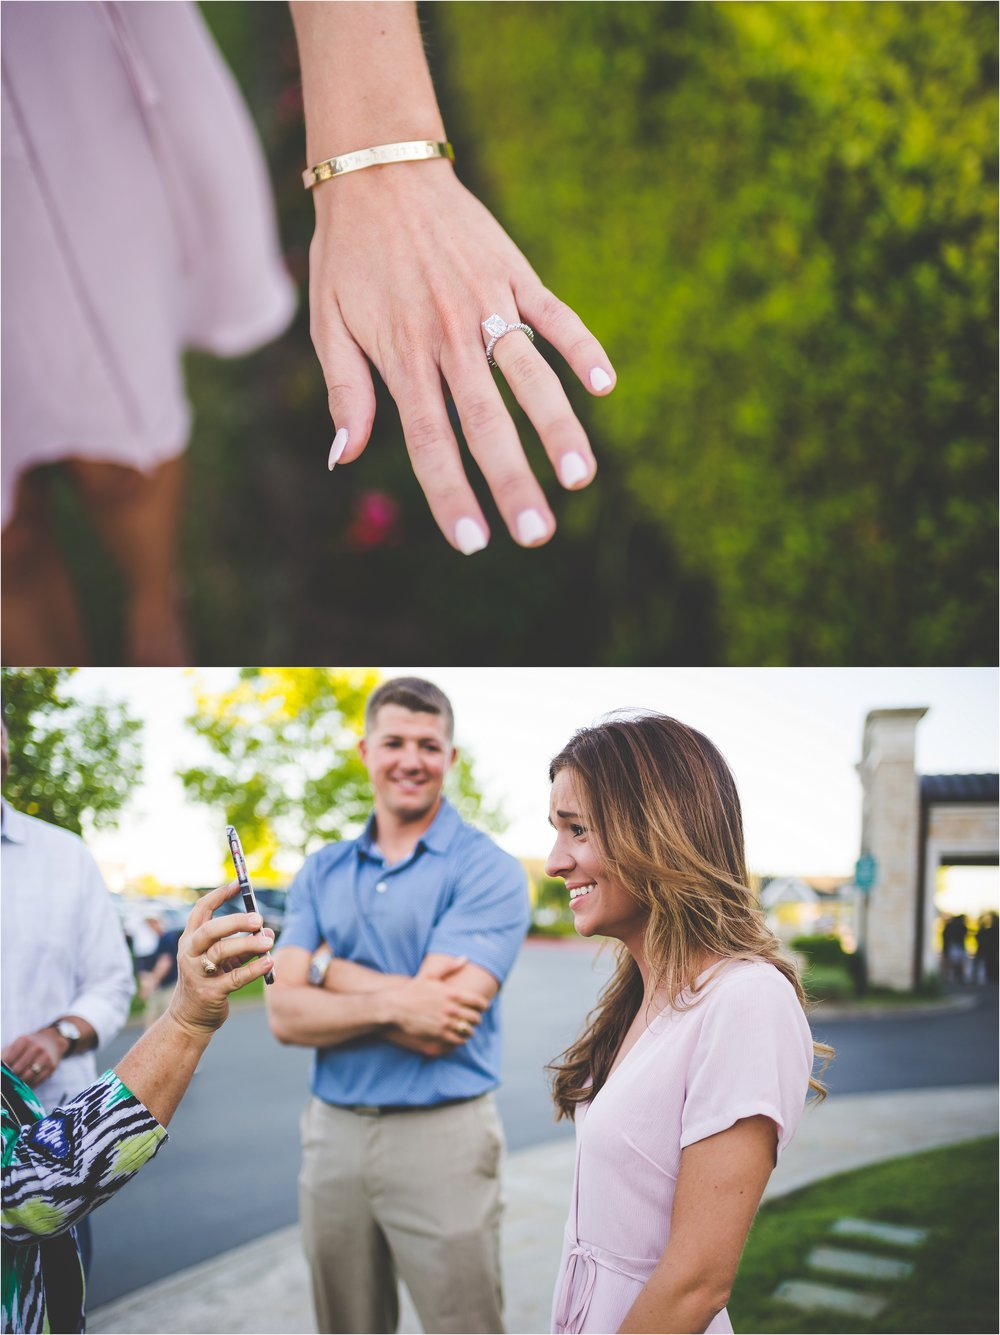 newcastle-golf-club-proposal-jannicka-mayte-seattle-washington-engagement-wedding-photographer_0047.jpg